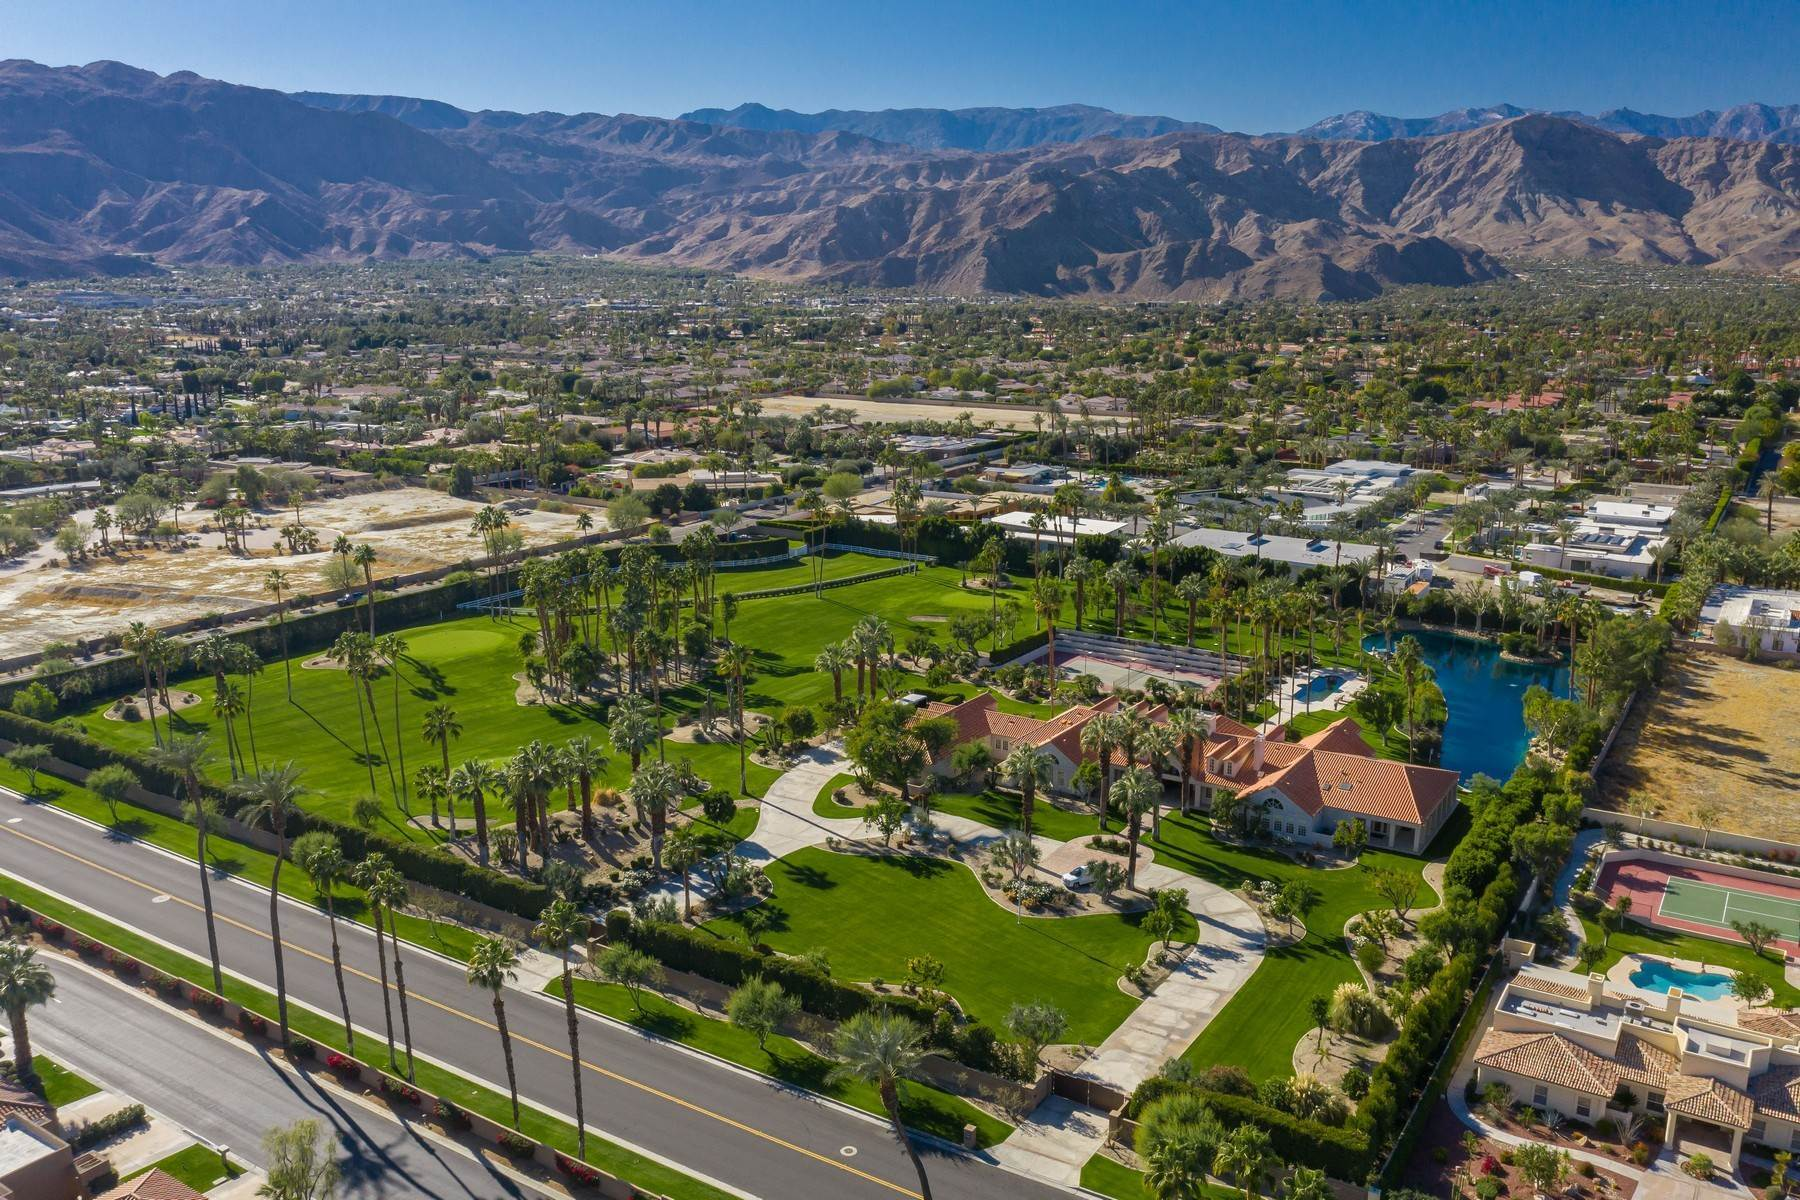 Single Family Homes for Sale at Paradise 40315 Cholla Lane Rancho Mirage, California 92270 United States